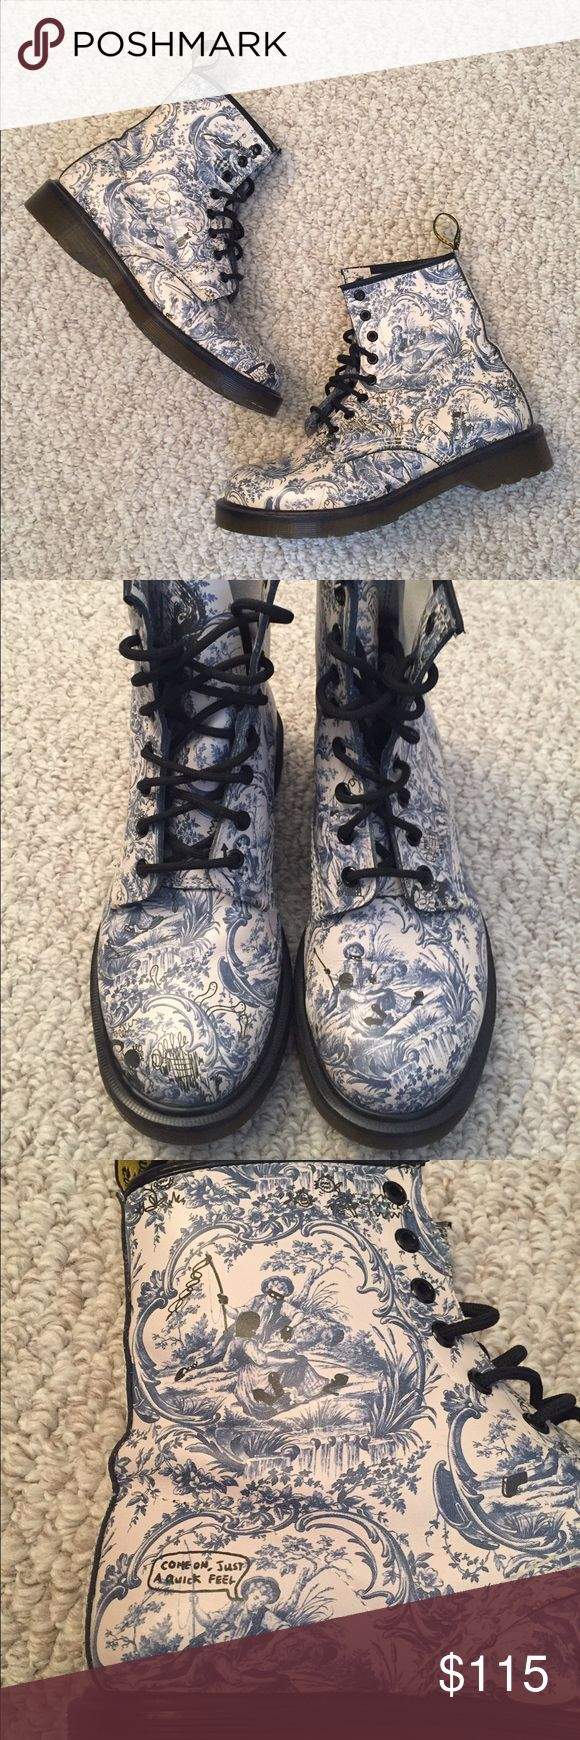 Dr Martens Jouy Vandalized Blue White Boots Dr Martens Jouy Vandalized design in blue and white. Women's size 9 US. Light scuff to the toe, blends with the design, hardly worn. Smoke and pet free home. No trades. Dr. Martens Shoes Combat & Moto Boots